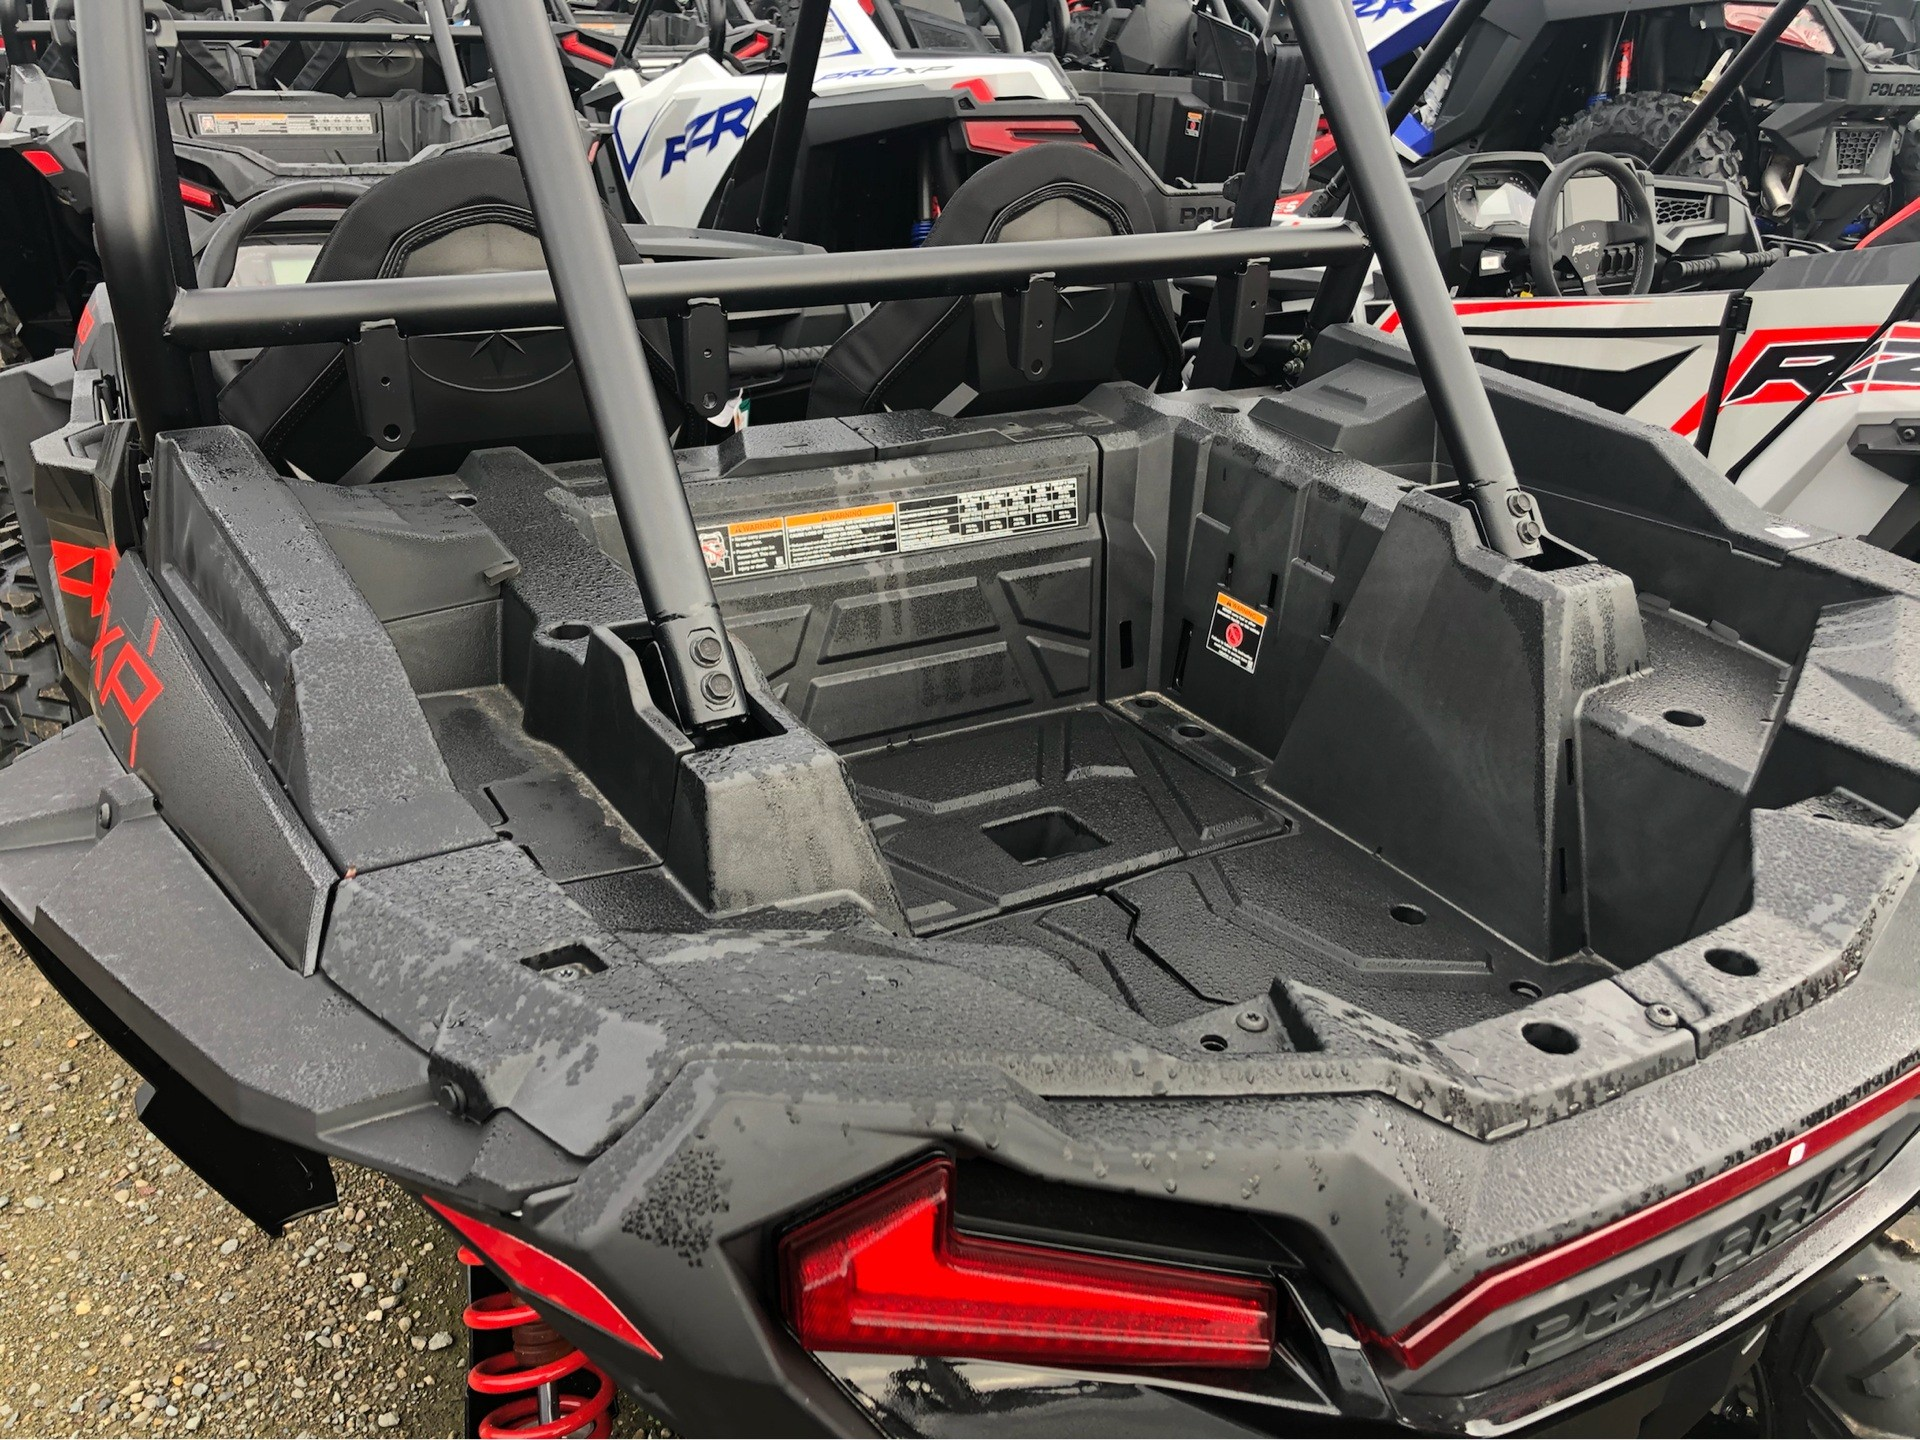 2020 Polaris RZR XP 1000 Premium in Elk Grove, California - Photo 7